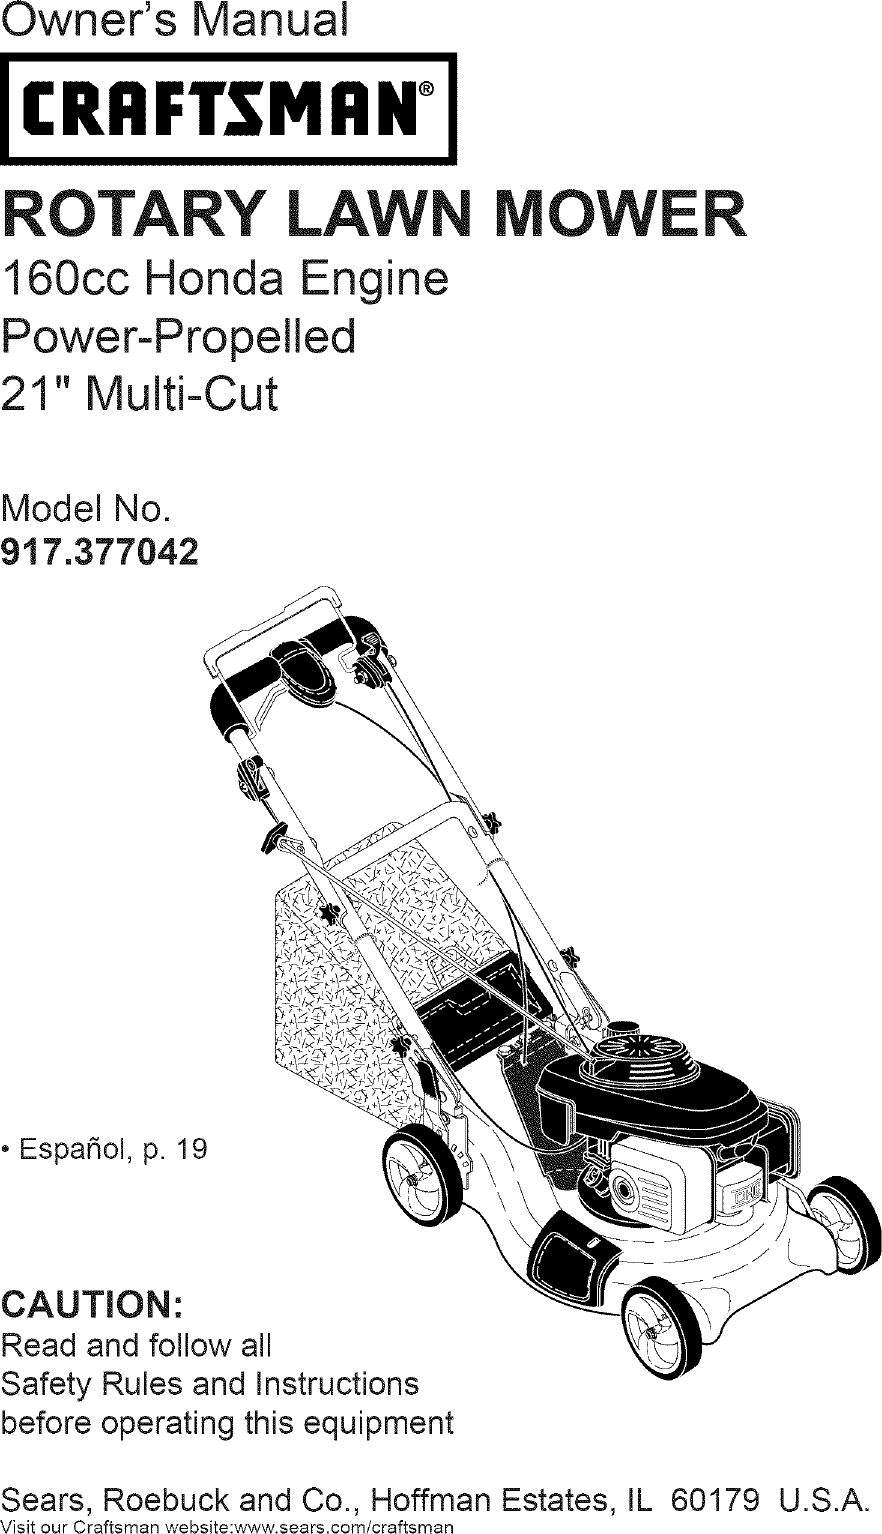 Craftsman 917377042 User Manual MOWER Manuals And Guides